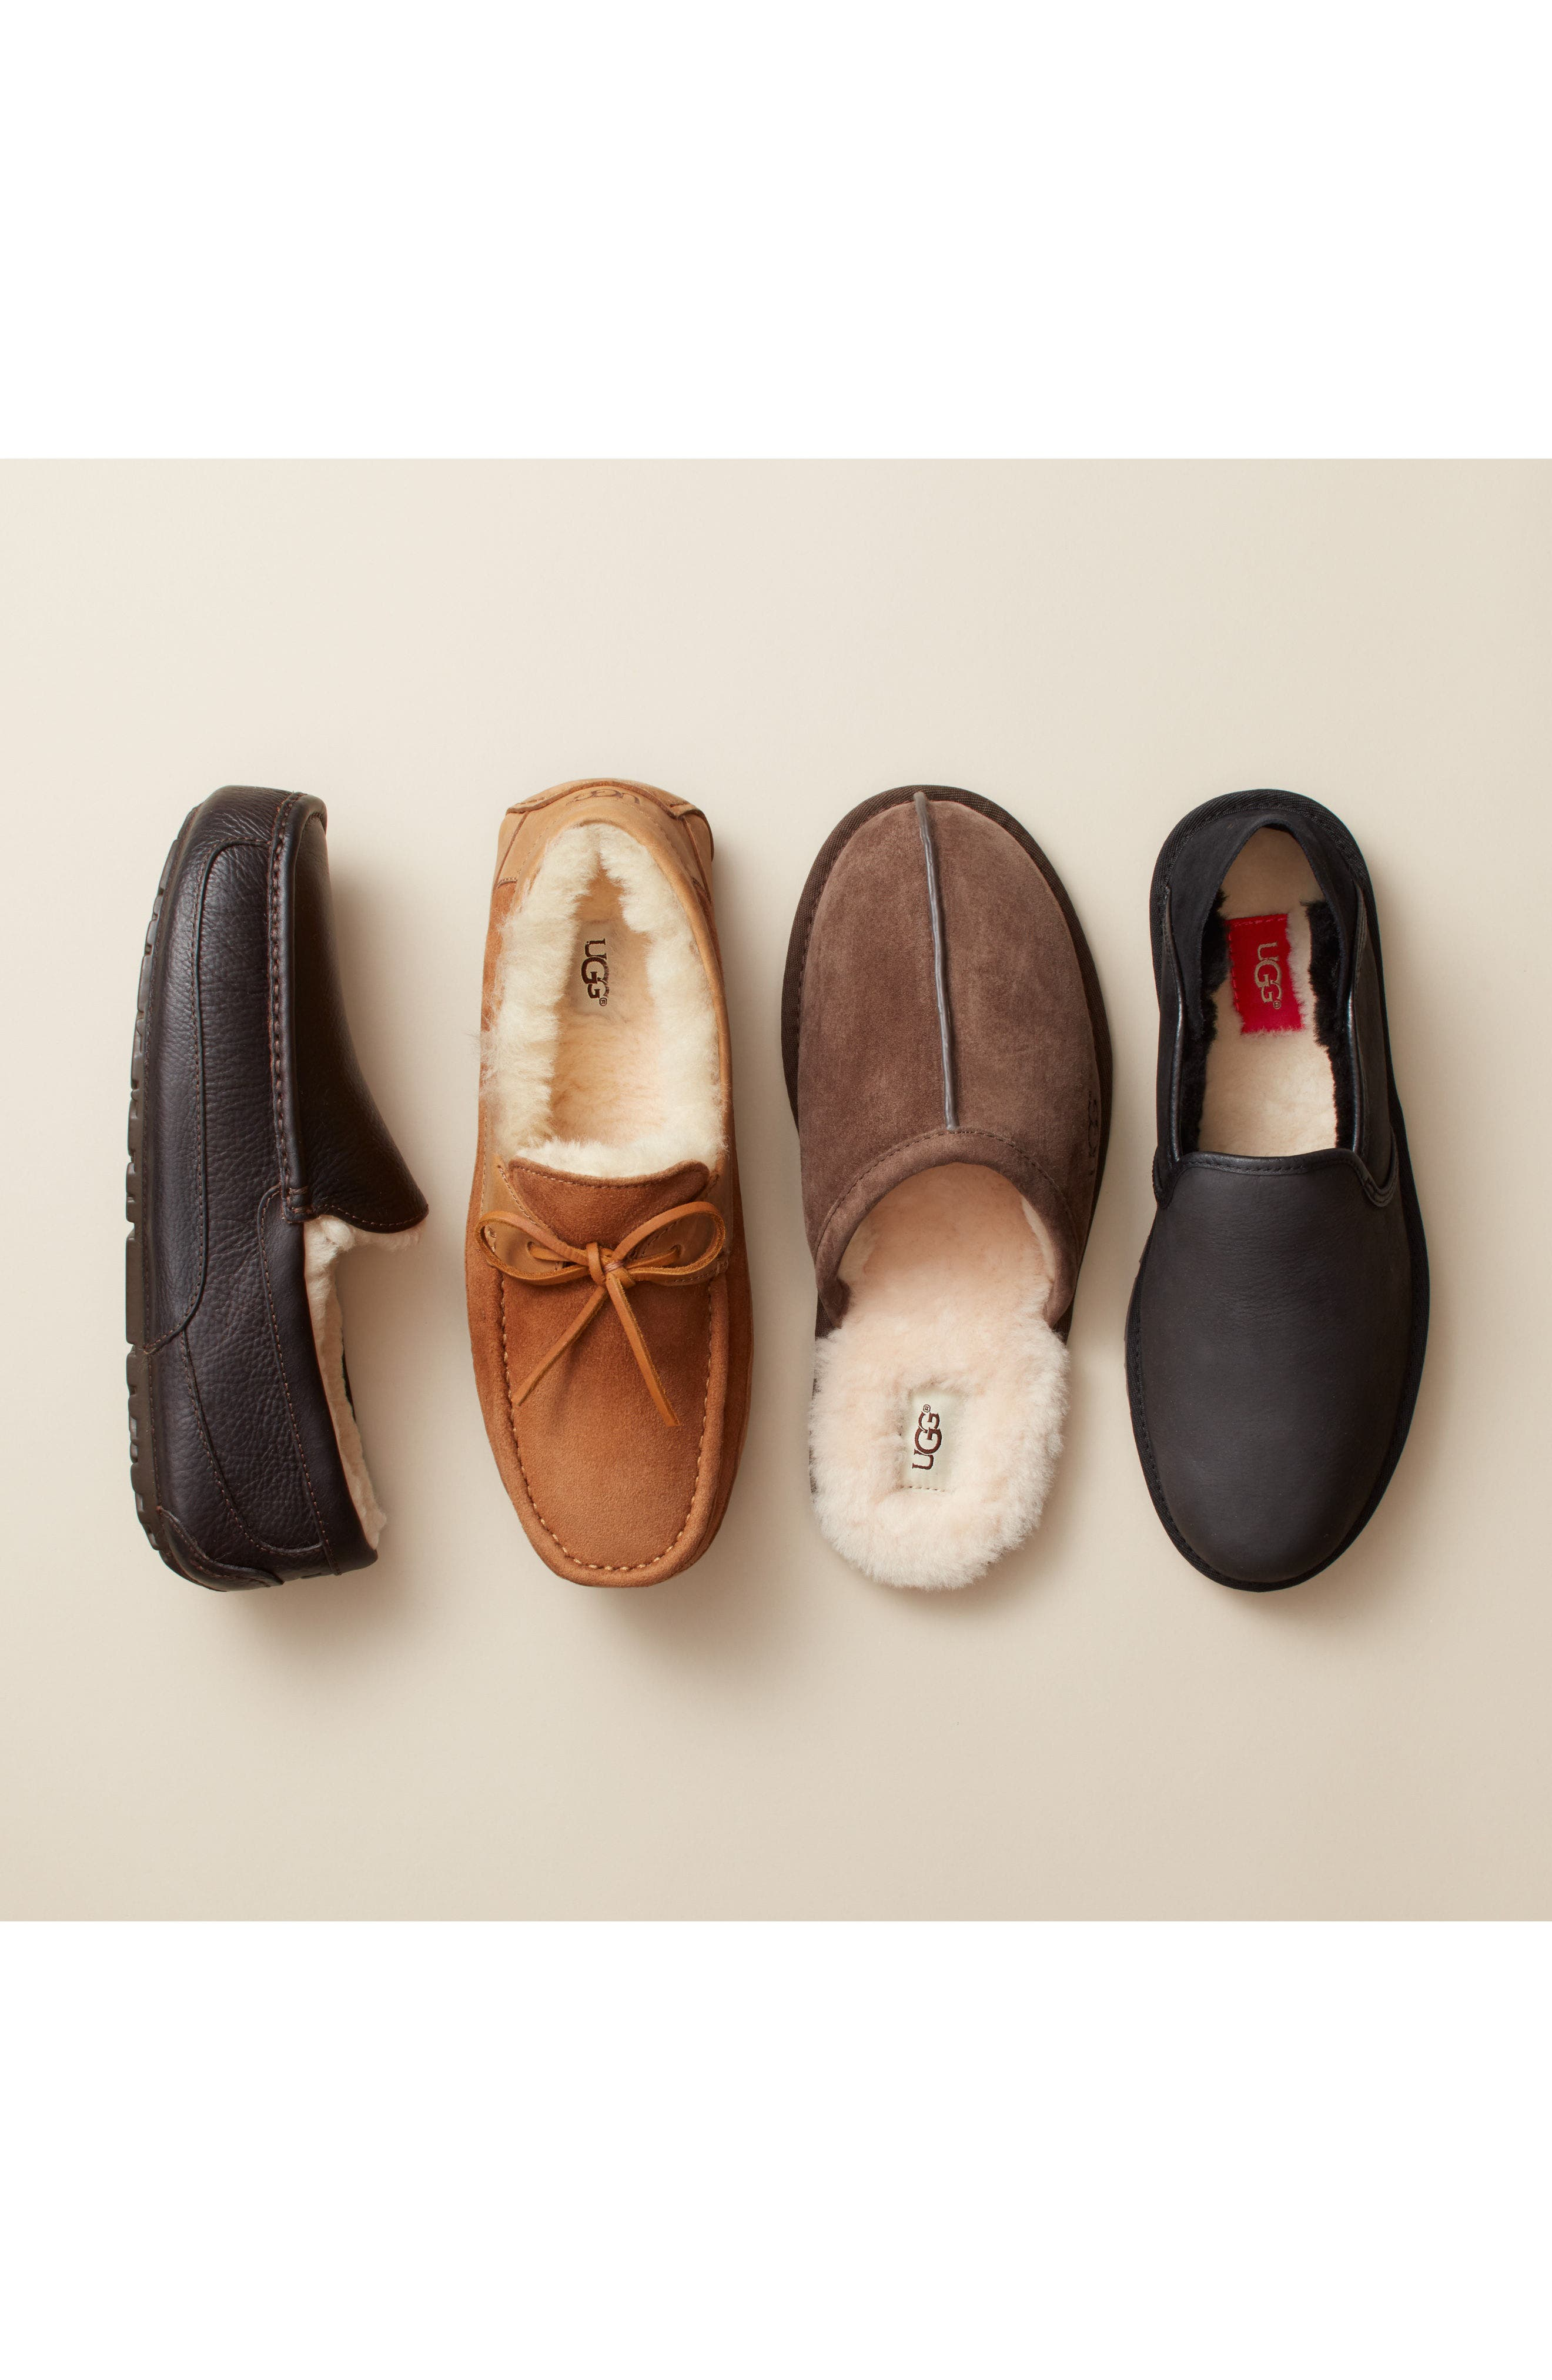 Ascot Leather Slipper,                             Alternate thumbnail 10, color,                             BLACK